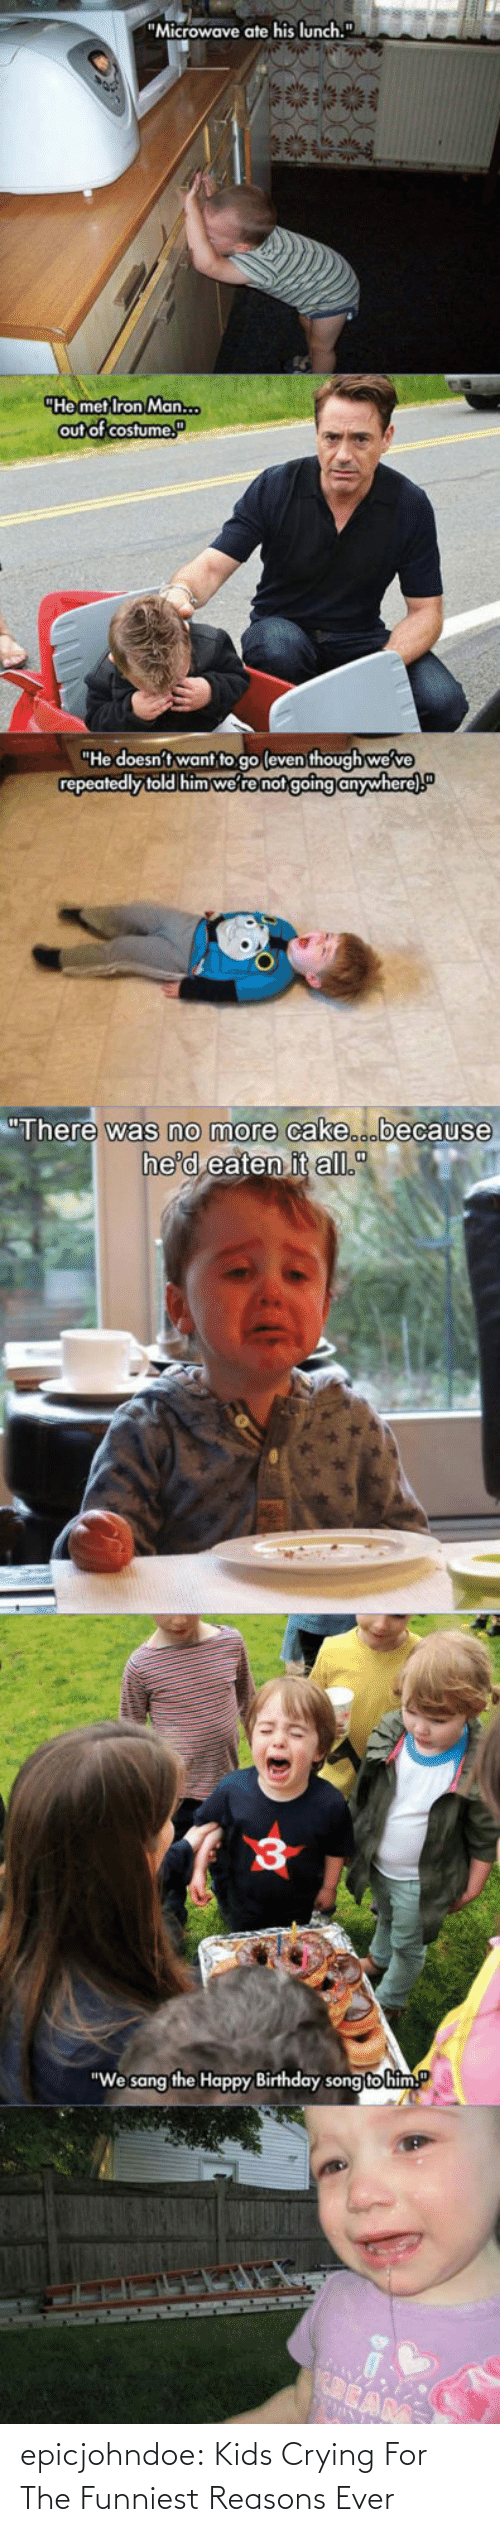 funniest: epicjohndoe:  Kids Crying For The Funniest Reasons Ever